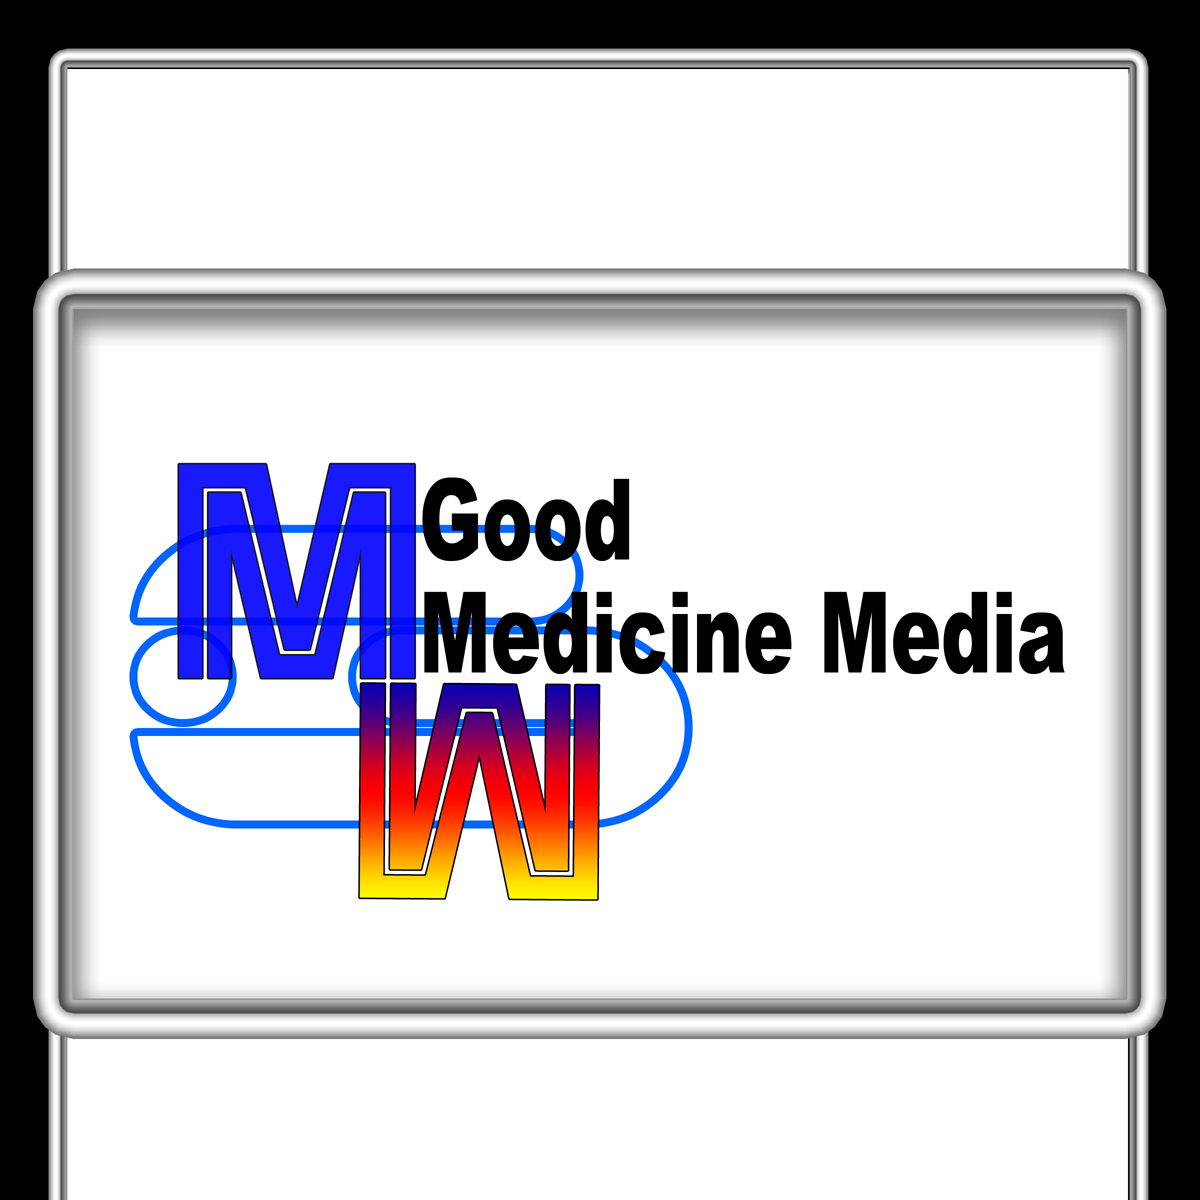 Logo Design by MITUCA ANDREI - Entry No. 7 in the Logo Design Contest Good Medicine Media Logo Design.